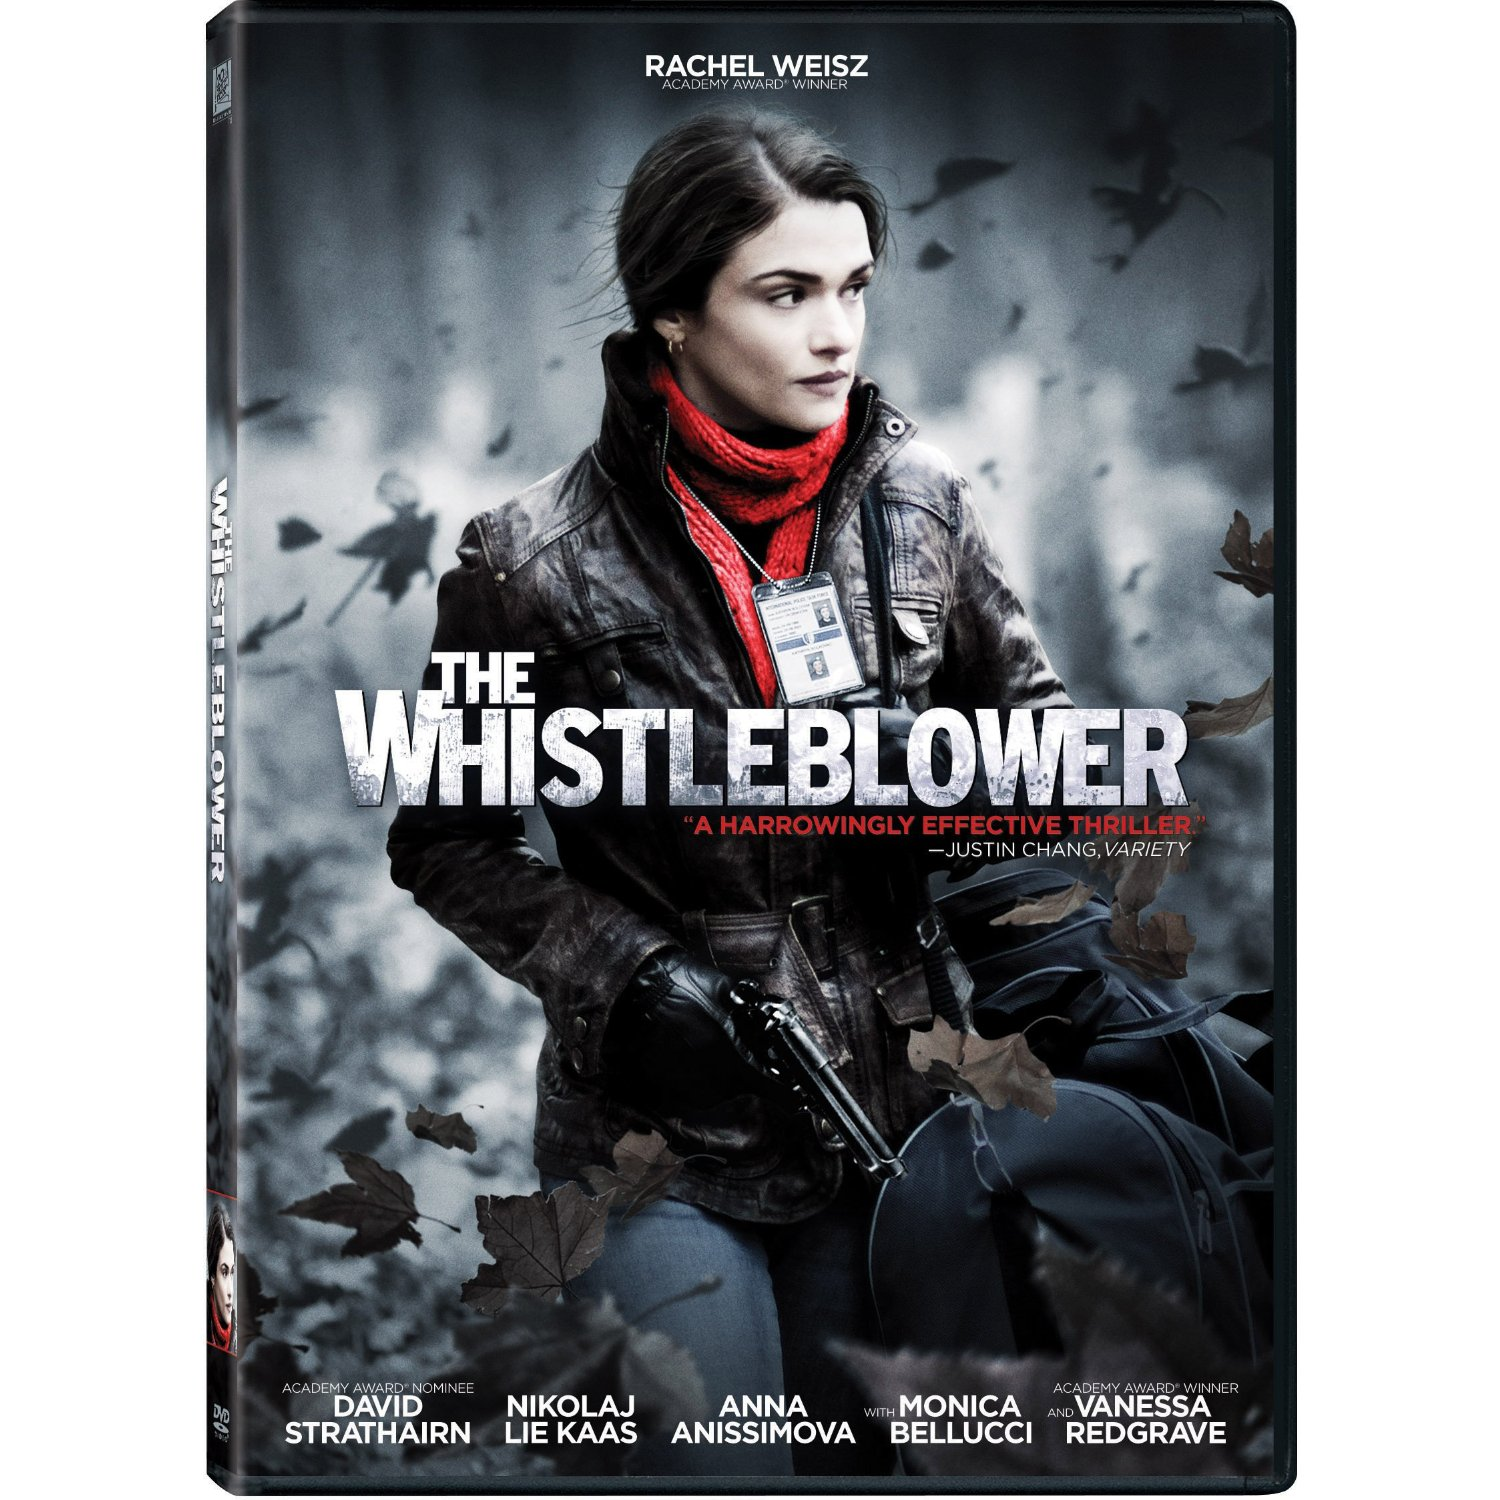 The Whistleblower starring Rachel Weisz